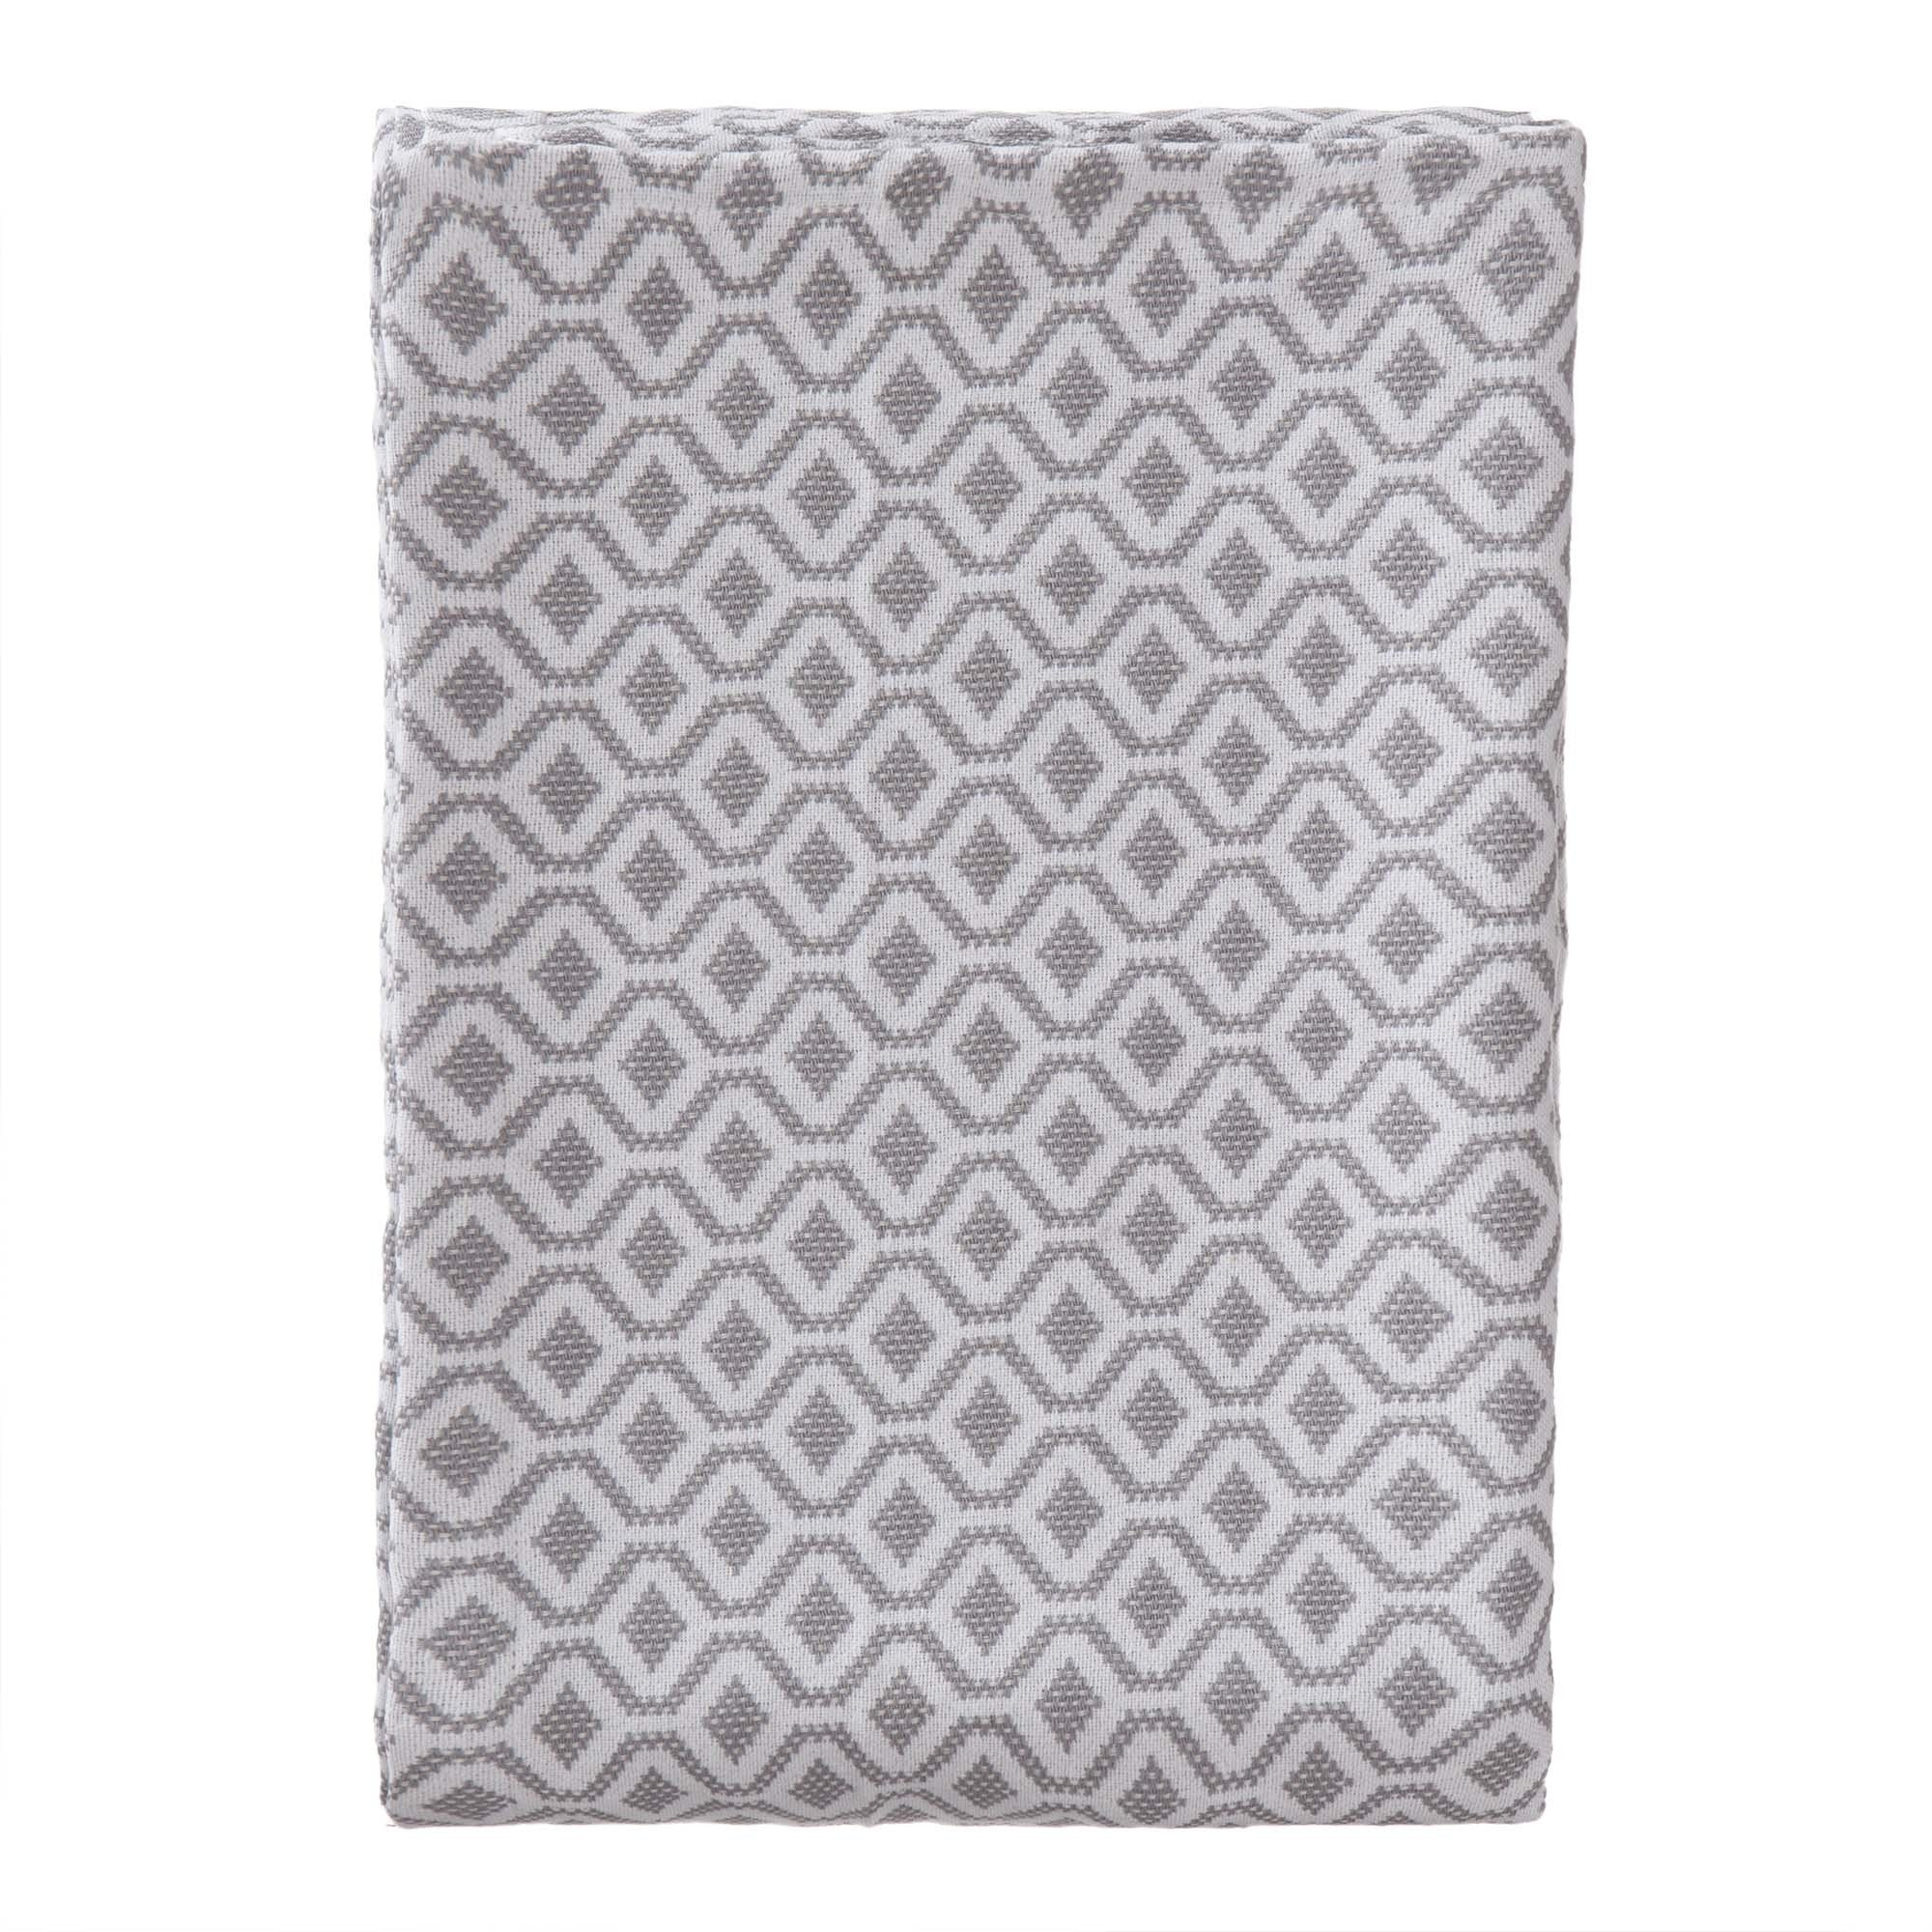 Viana bedspread, grey & white, 100% cotton